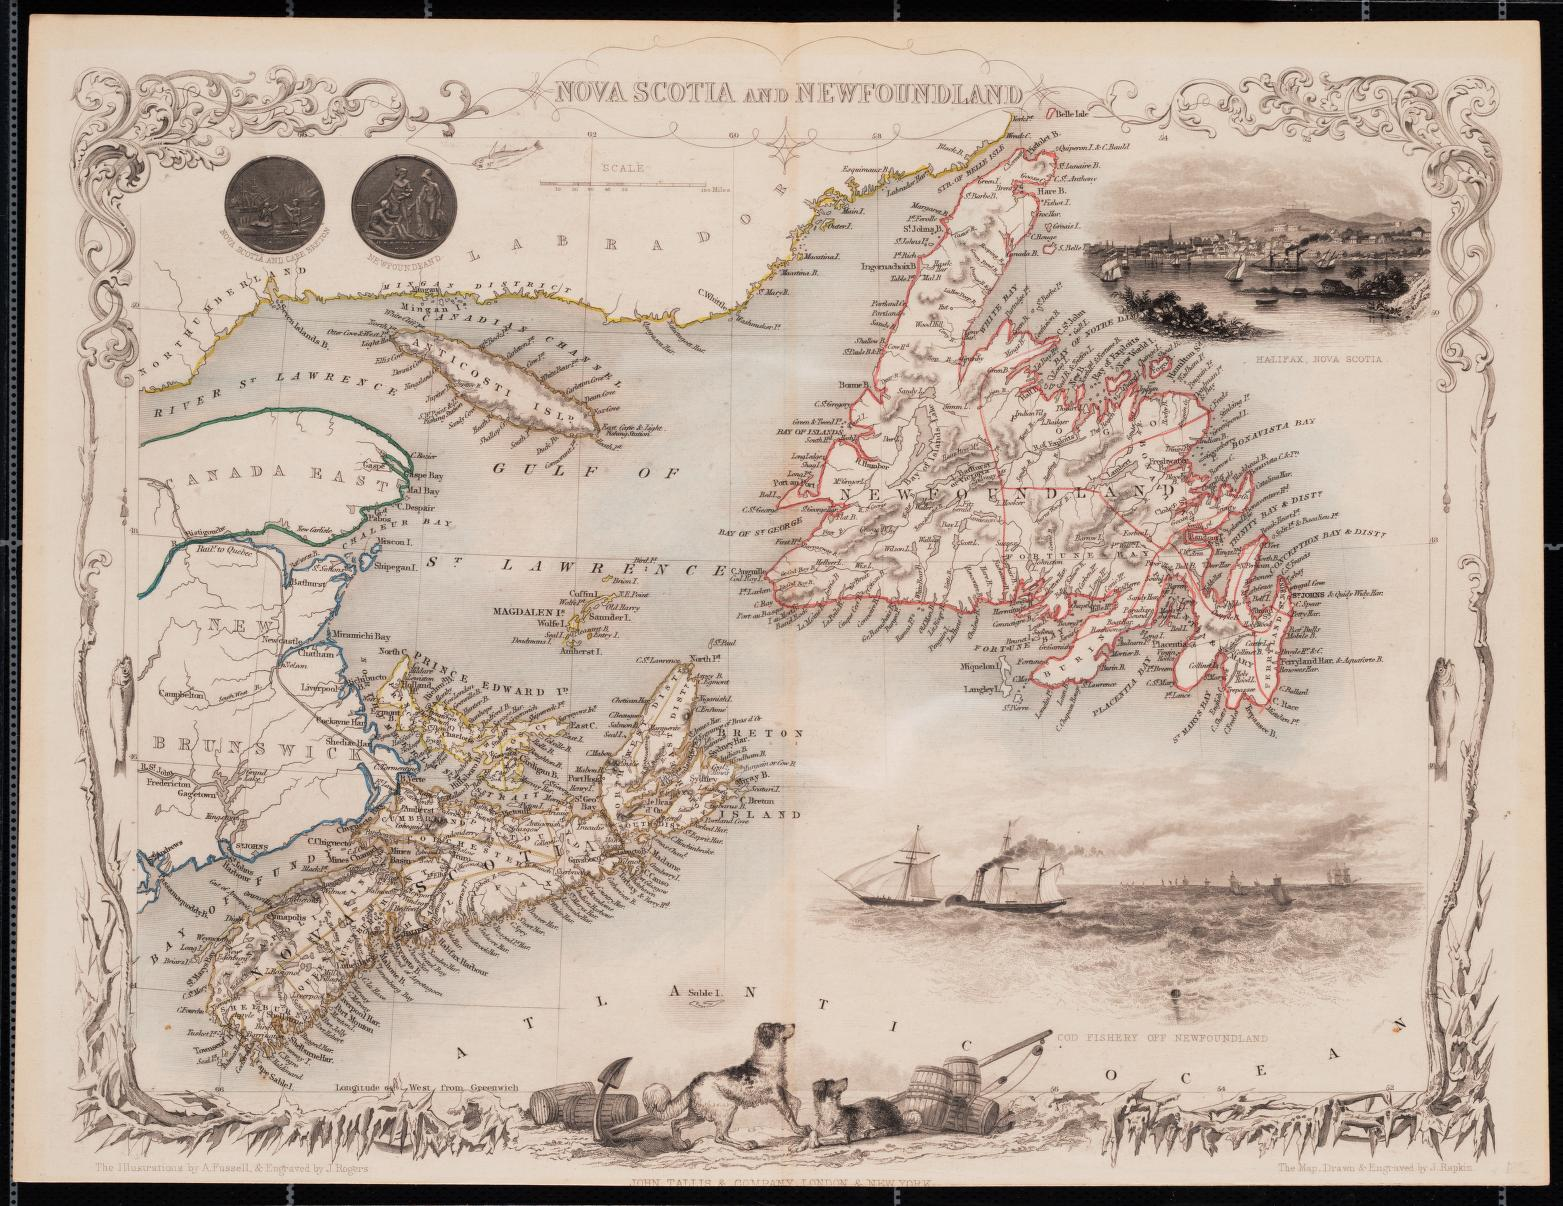 Nova Scotia and Newfoundland, 1851